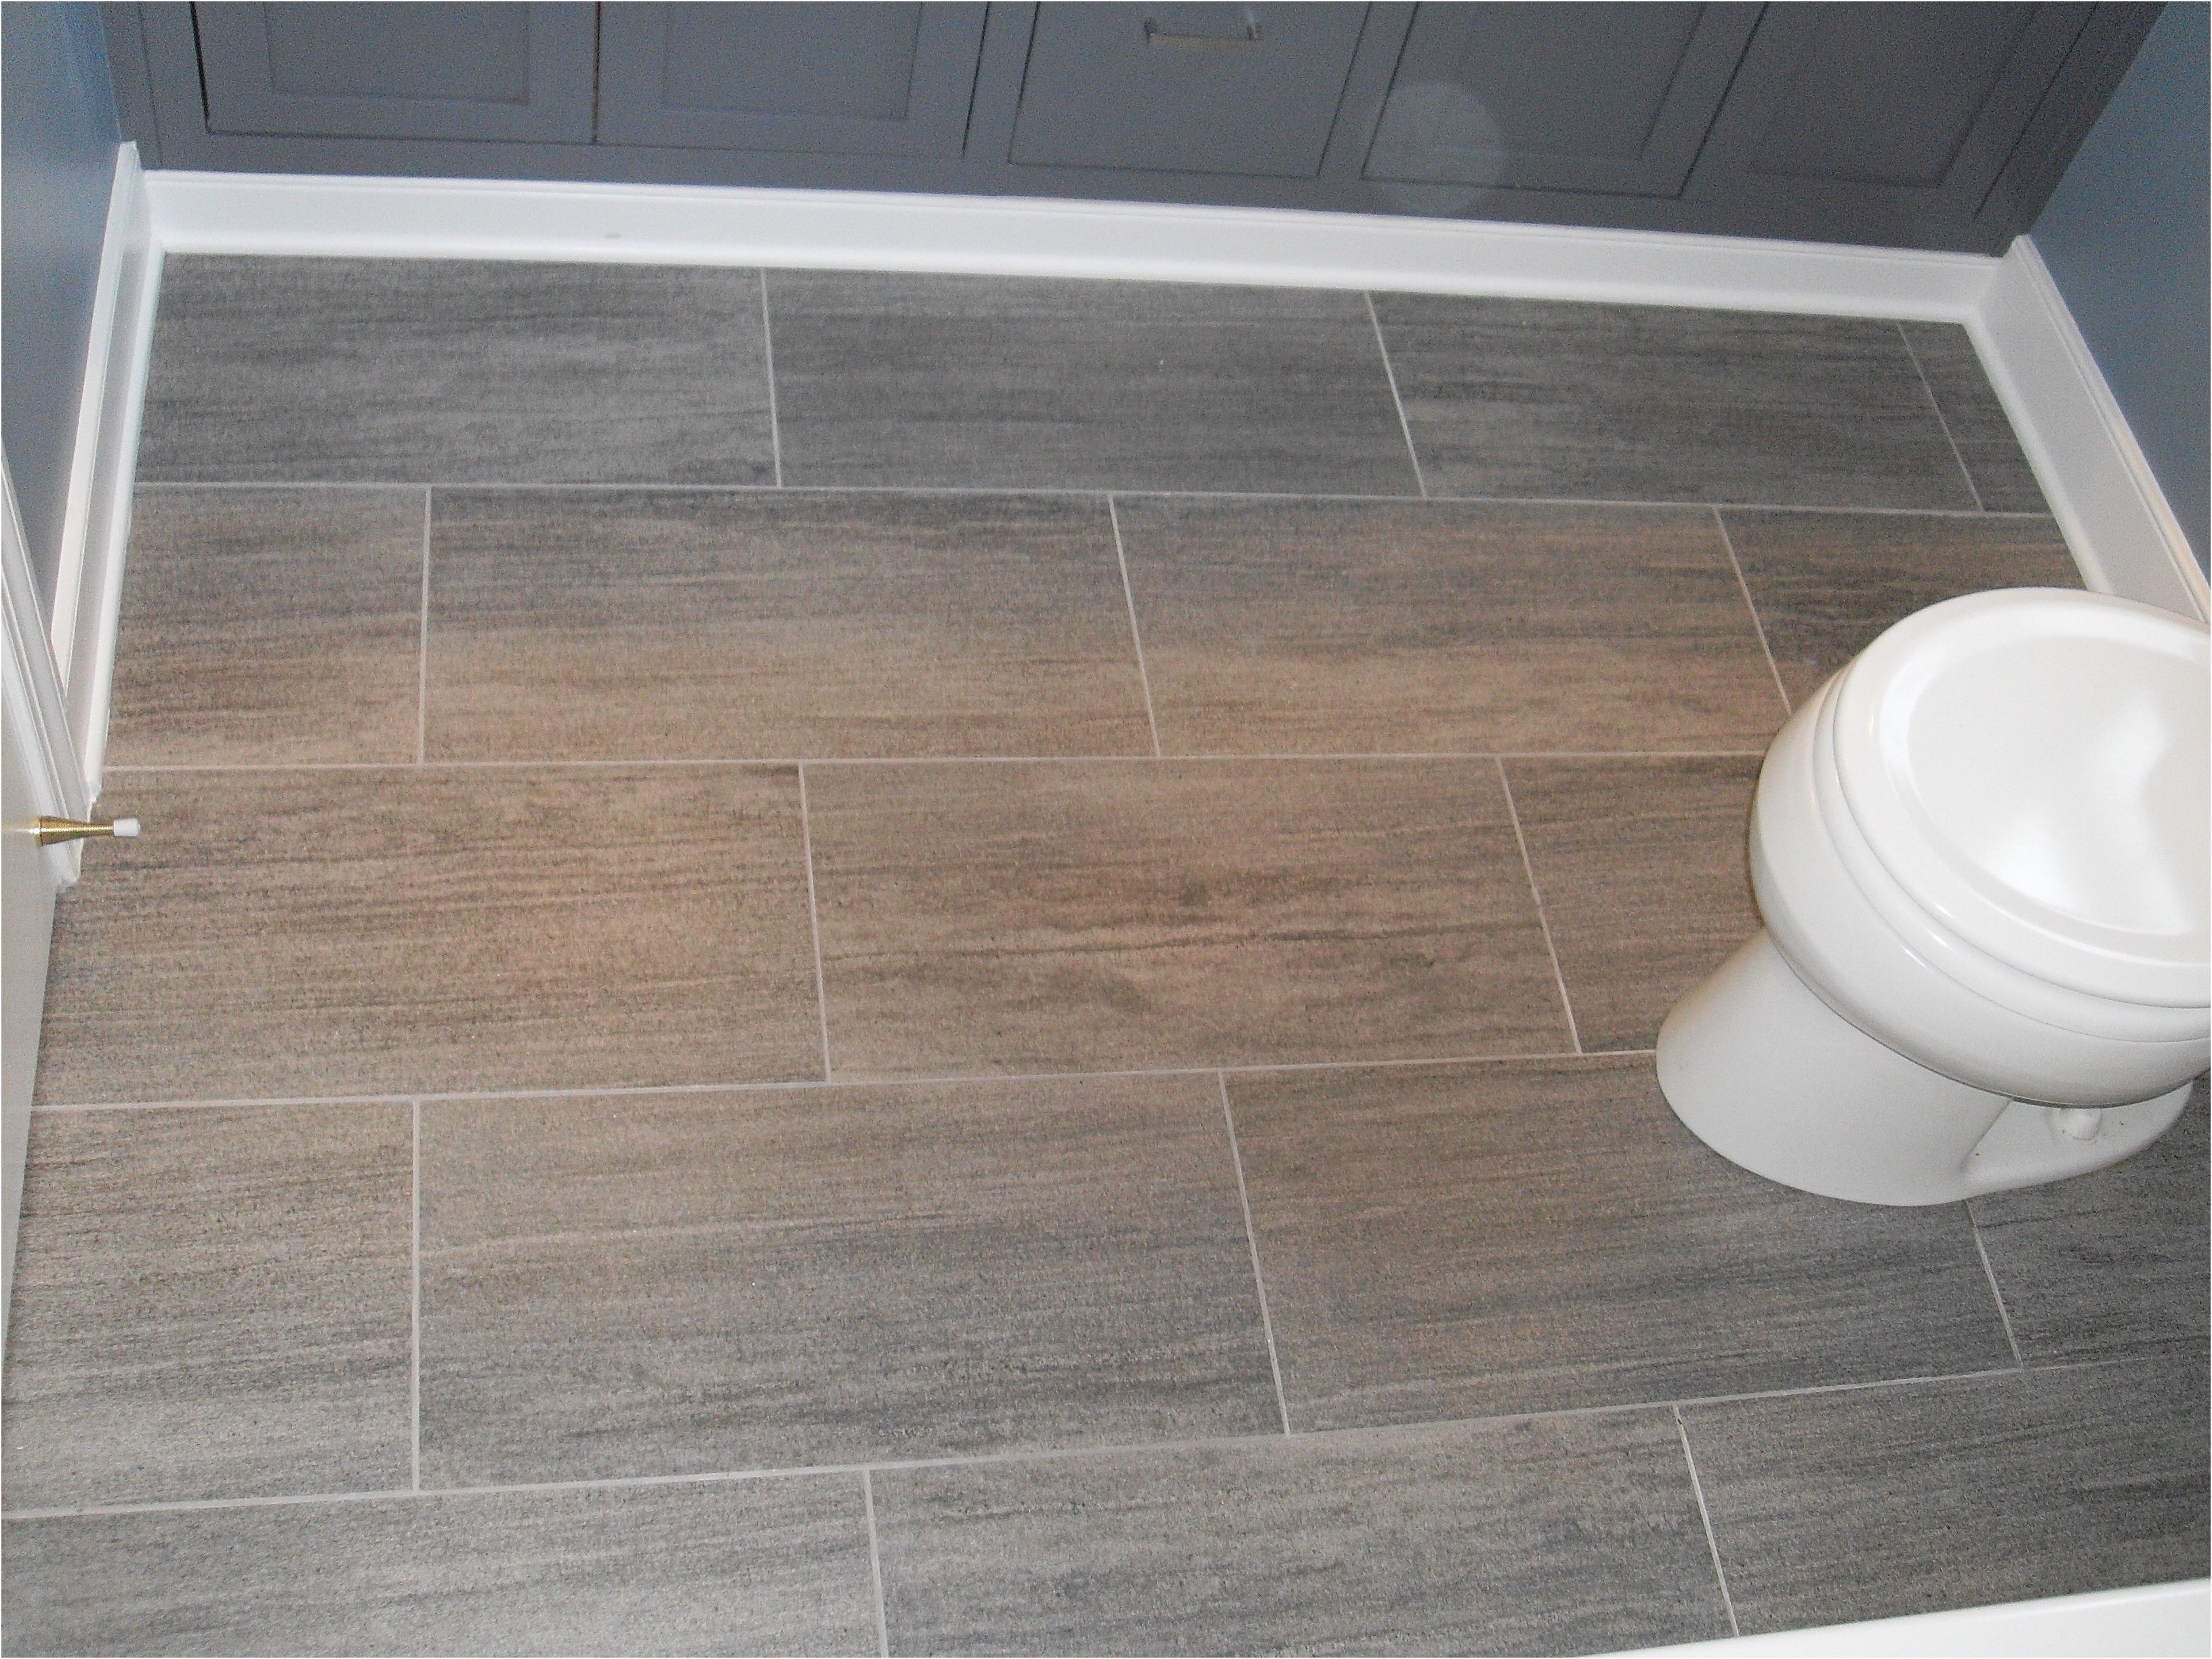 Charming Easy Bathroom Flooring Ideas Part - 3: Best 25 Cheap Bathroom Flooring Ideas On Pinterest Bud From Inexpensive  Bathroom Flooring